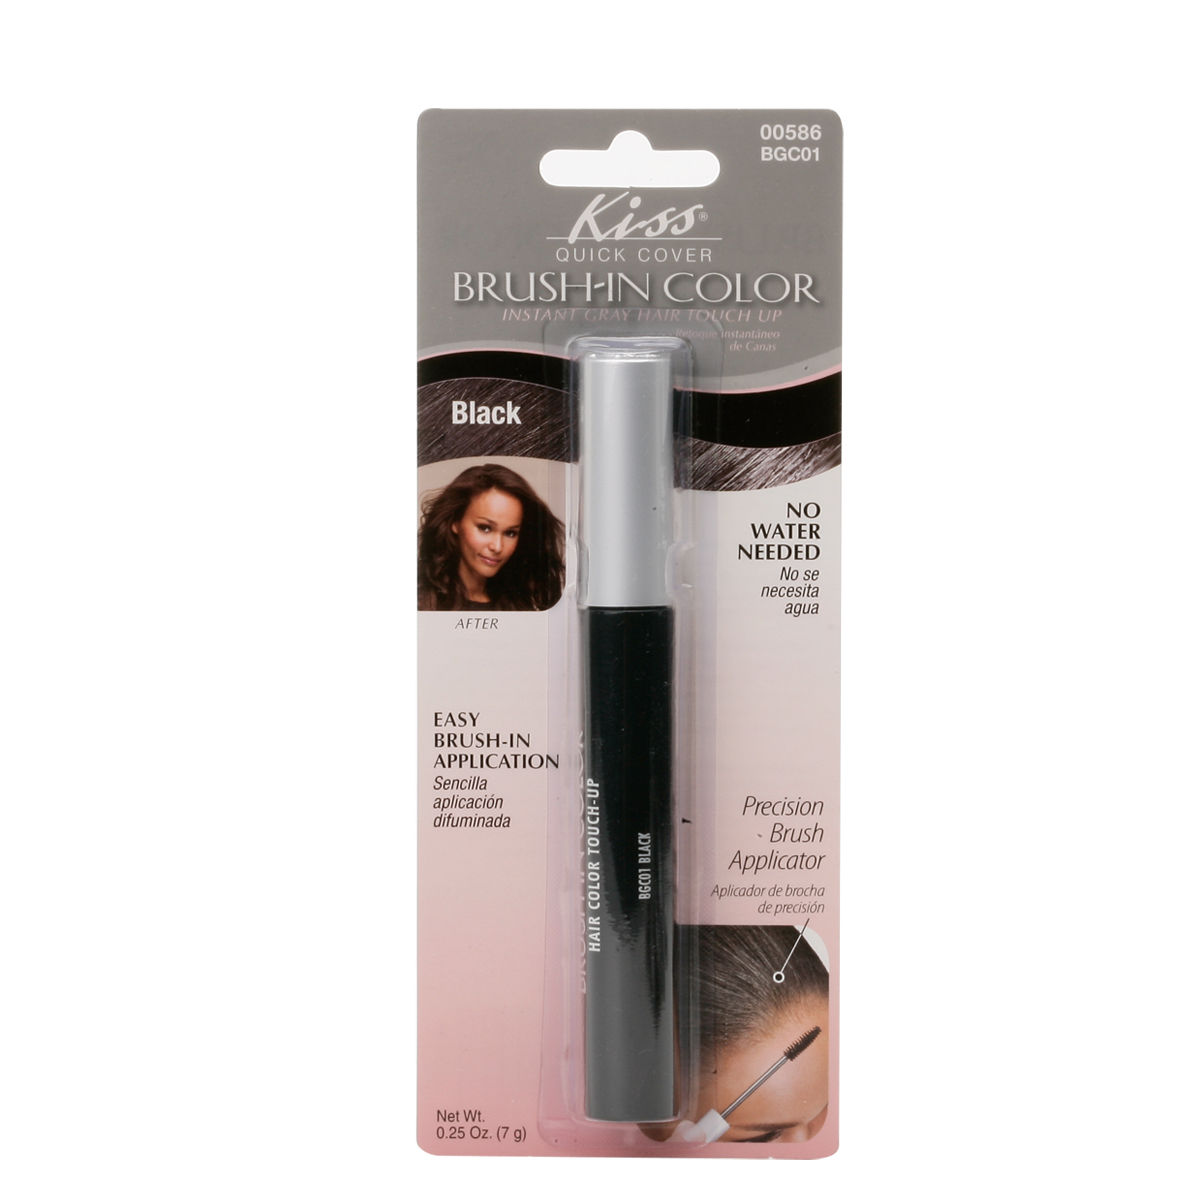 Kiss Quick Cover Gray Hair Touch Up Brush In Color Hair Mascara Bgc